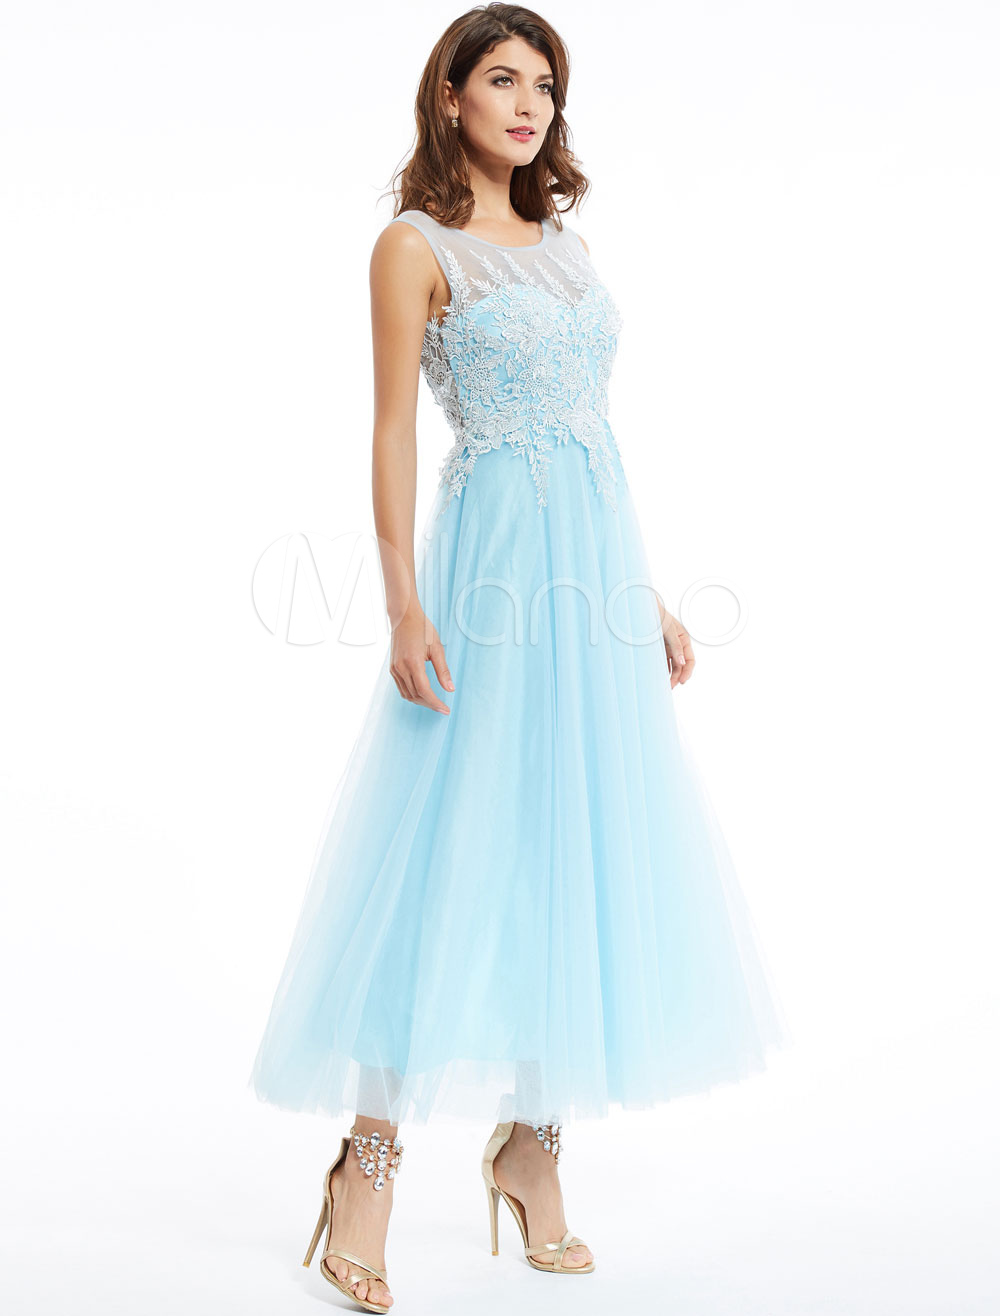 Prom Dresses Long Lace Chiffon Pastel Blue Sleeveless Applique Ankle